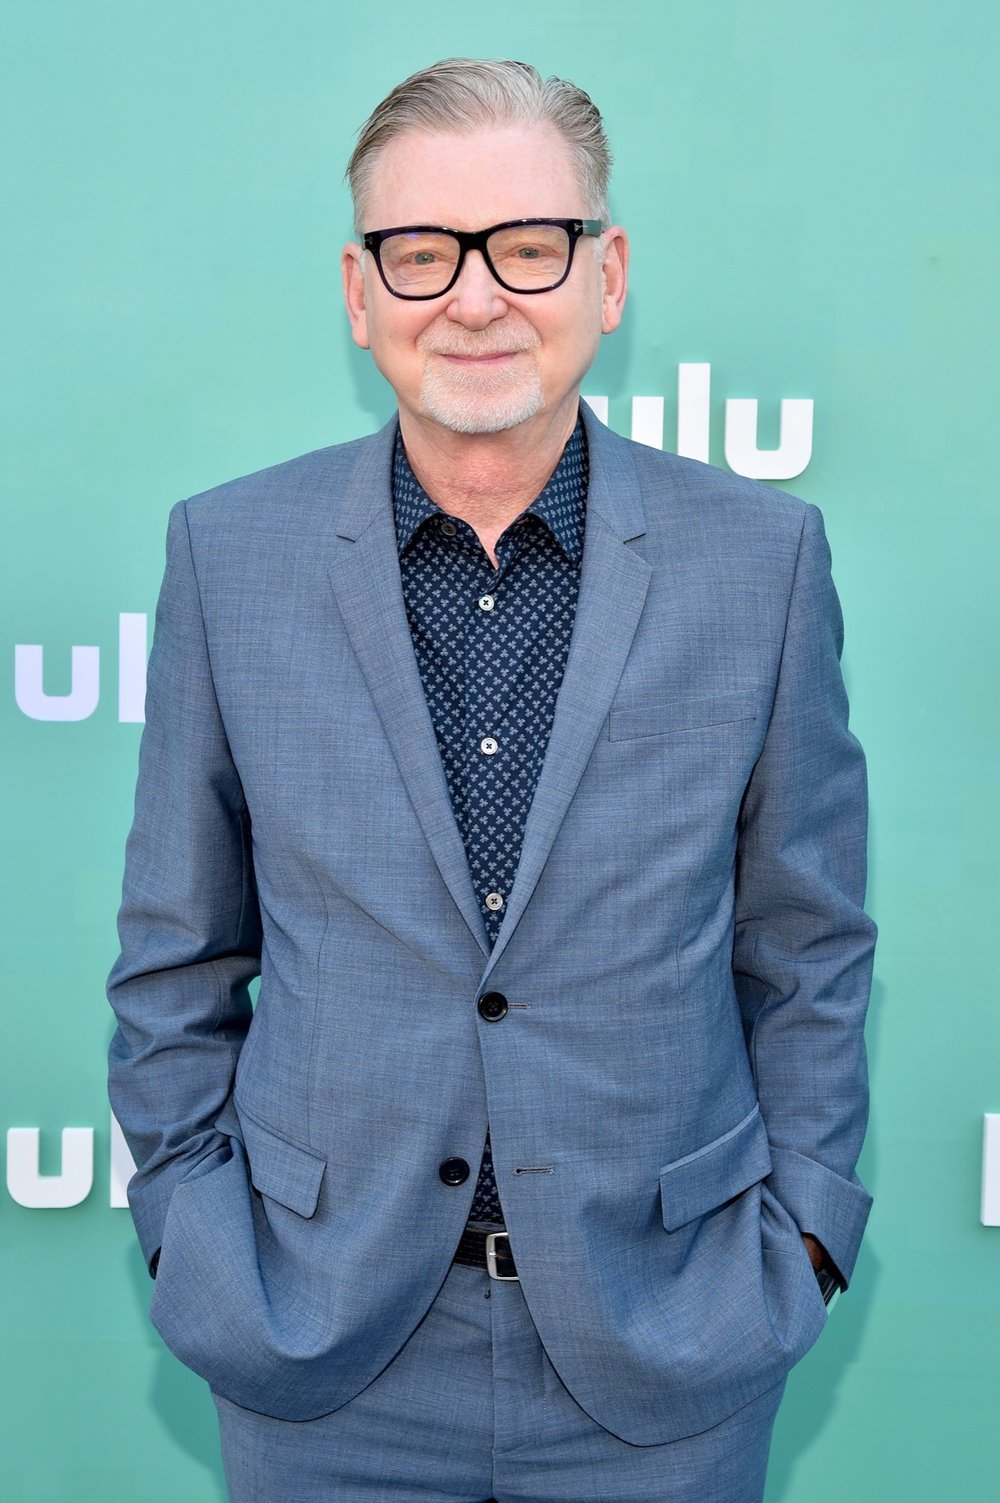 NEW YORK, NY - MAY 02:  Warren Littlefield attends the Hulu Upfront 2018 Brunch at La Sirena on May 2, 2018 in New York City.  (Photo by Bryan Bedder/Getty Images for Hulu) *** Local Caption *** Warren Littlefield